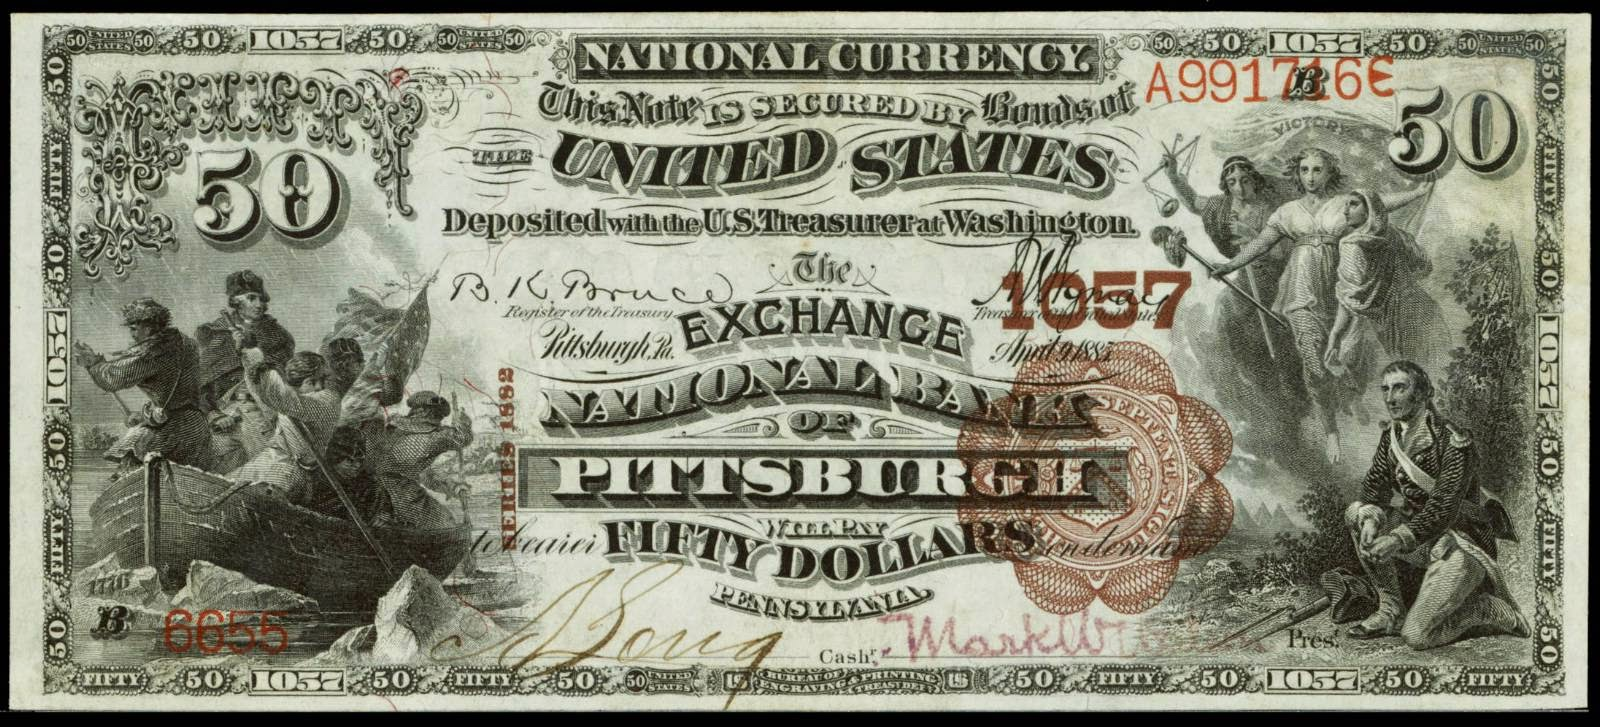 National Currency 1882 50 Dollar bill